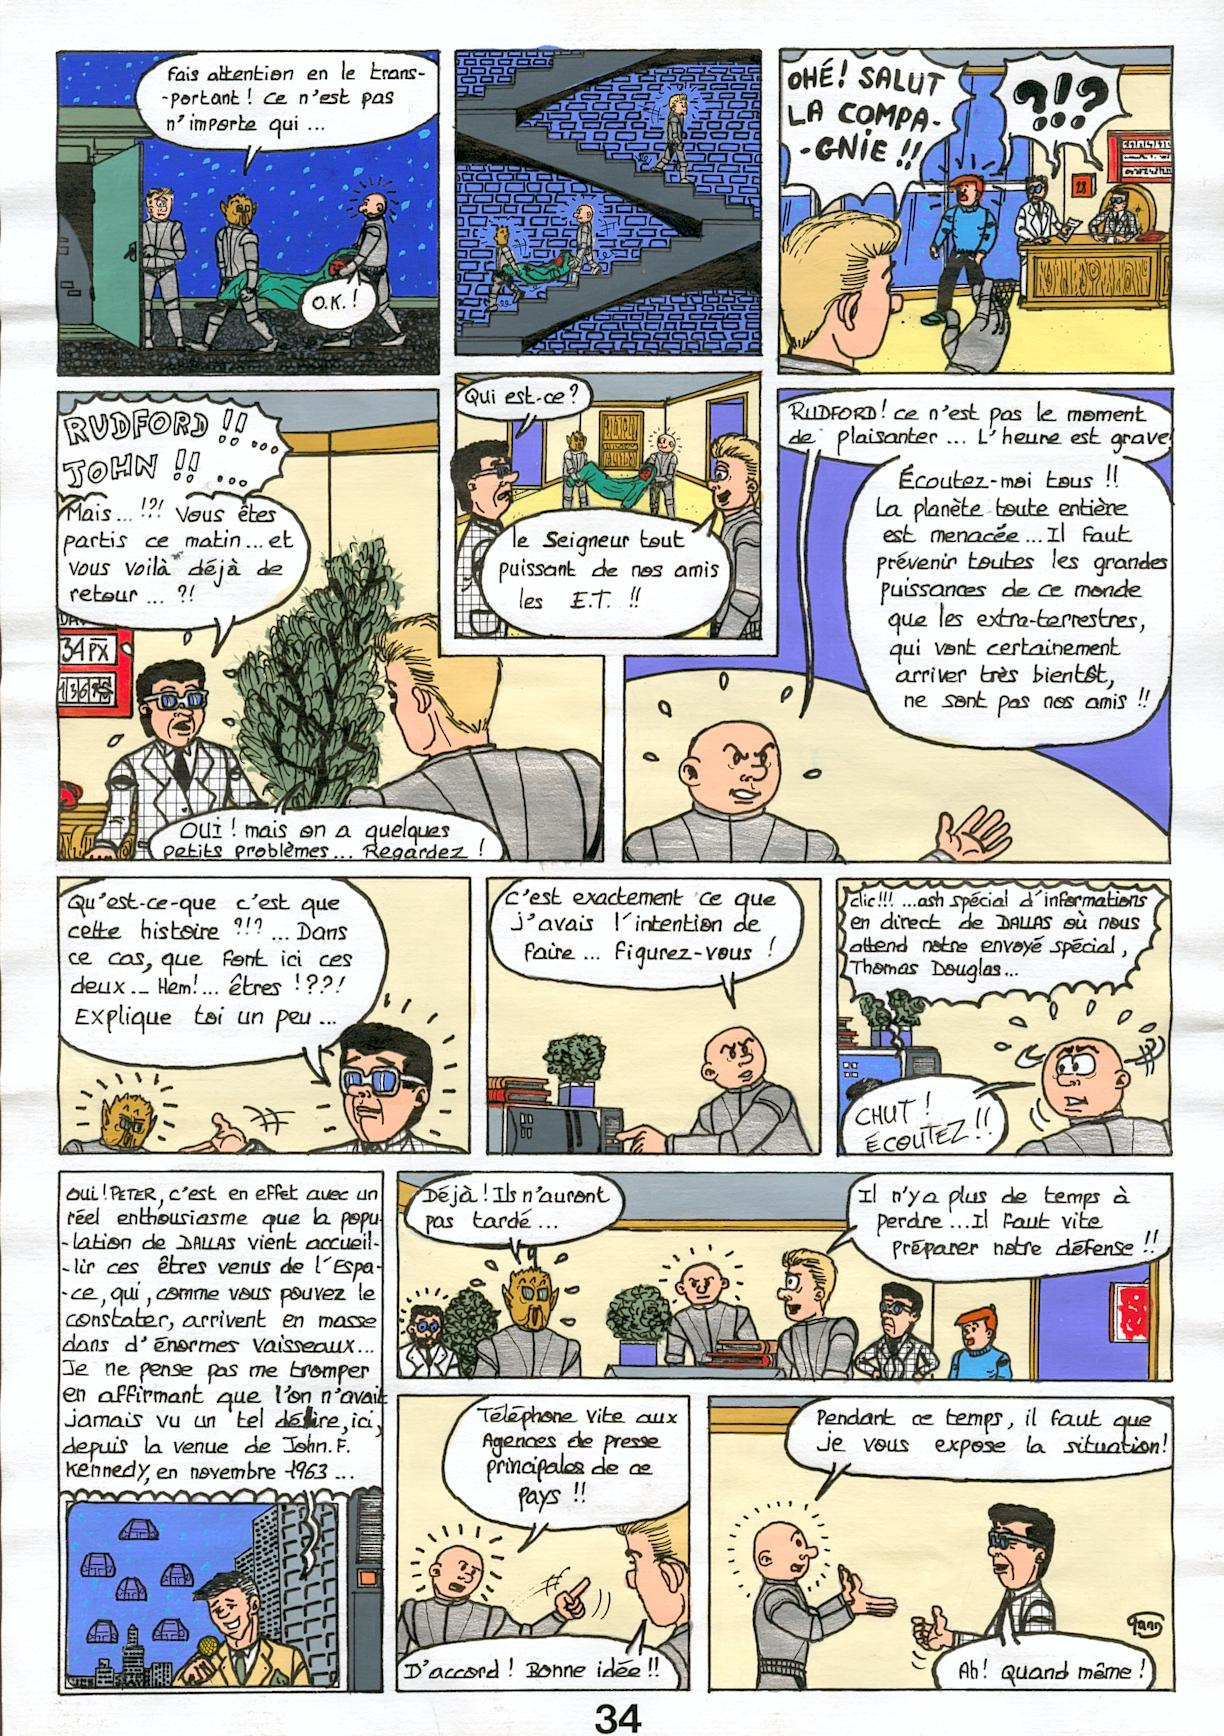 BD 8 page 34